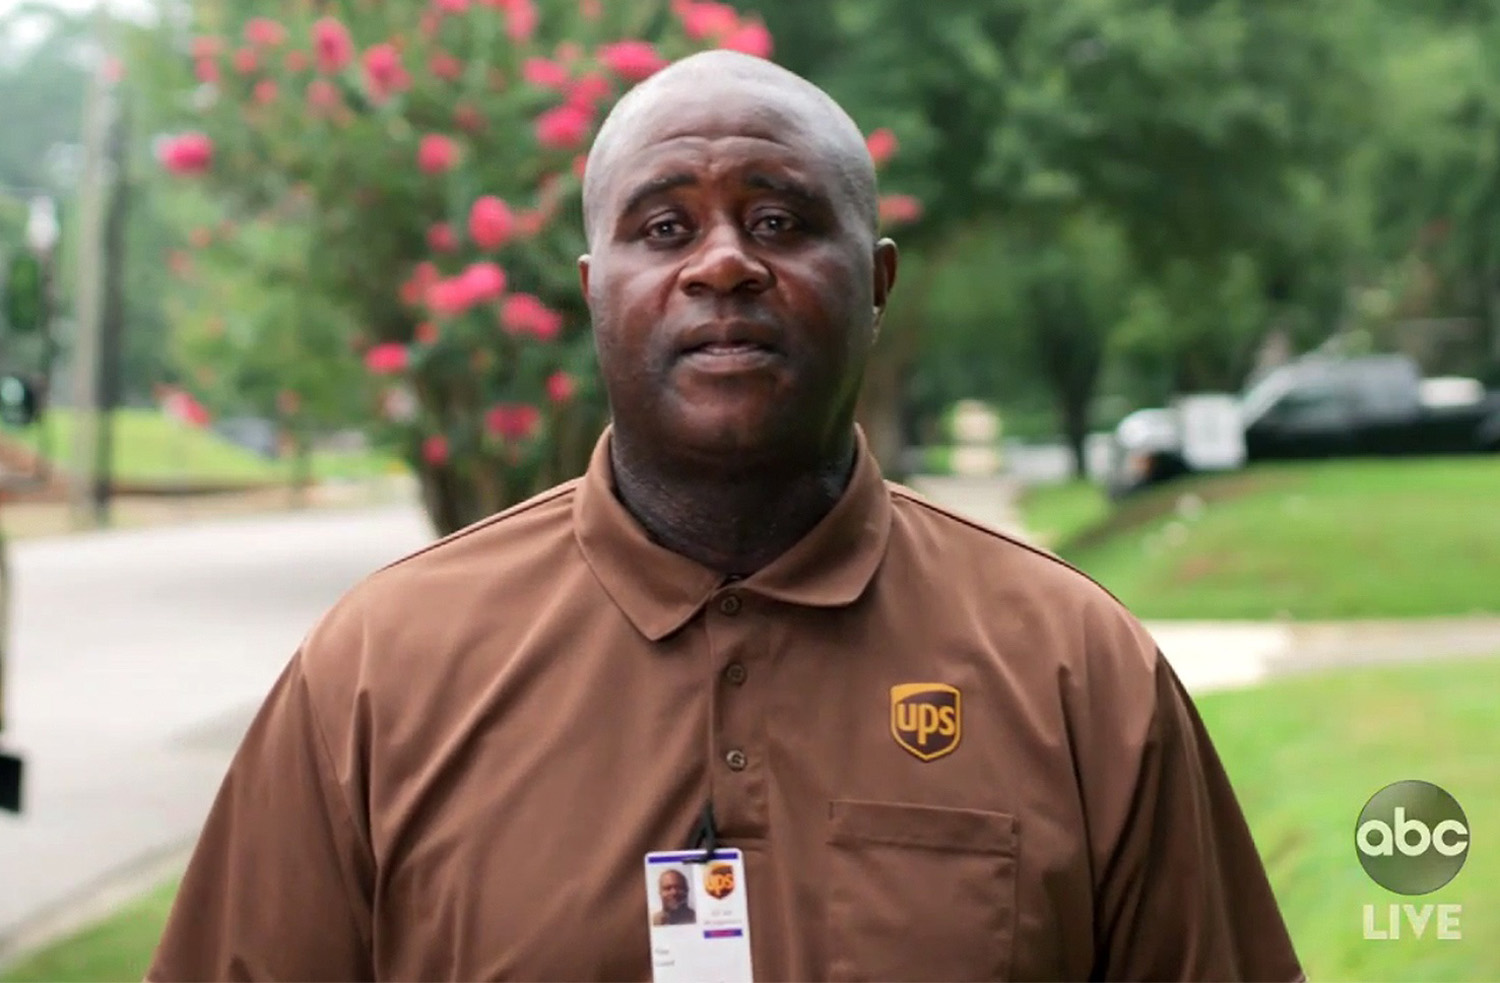 Tim Lloyd, a UPS worker from Alabama, presented the award for outstanding performance by a comedy actress